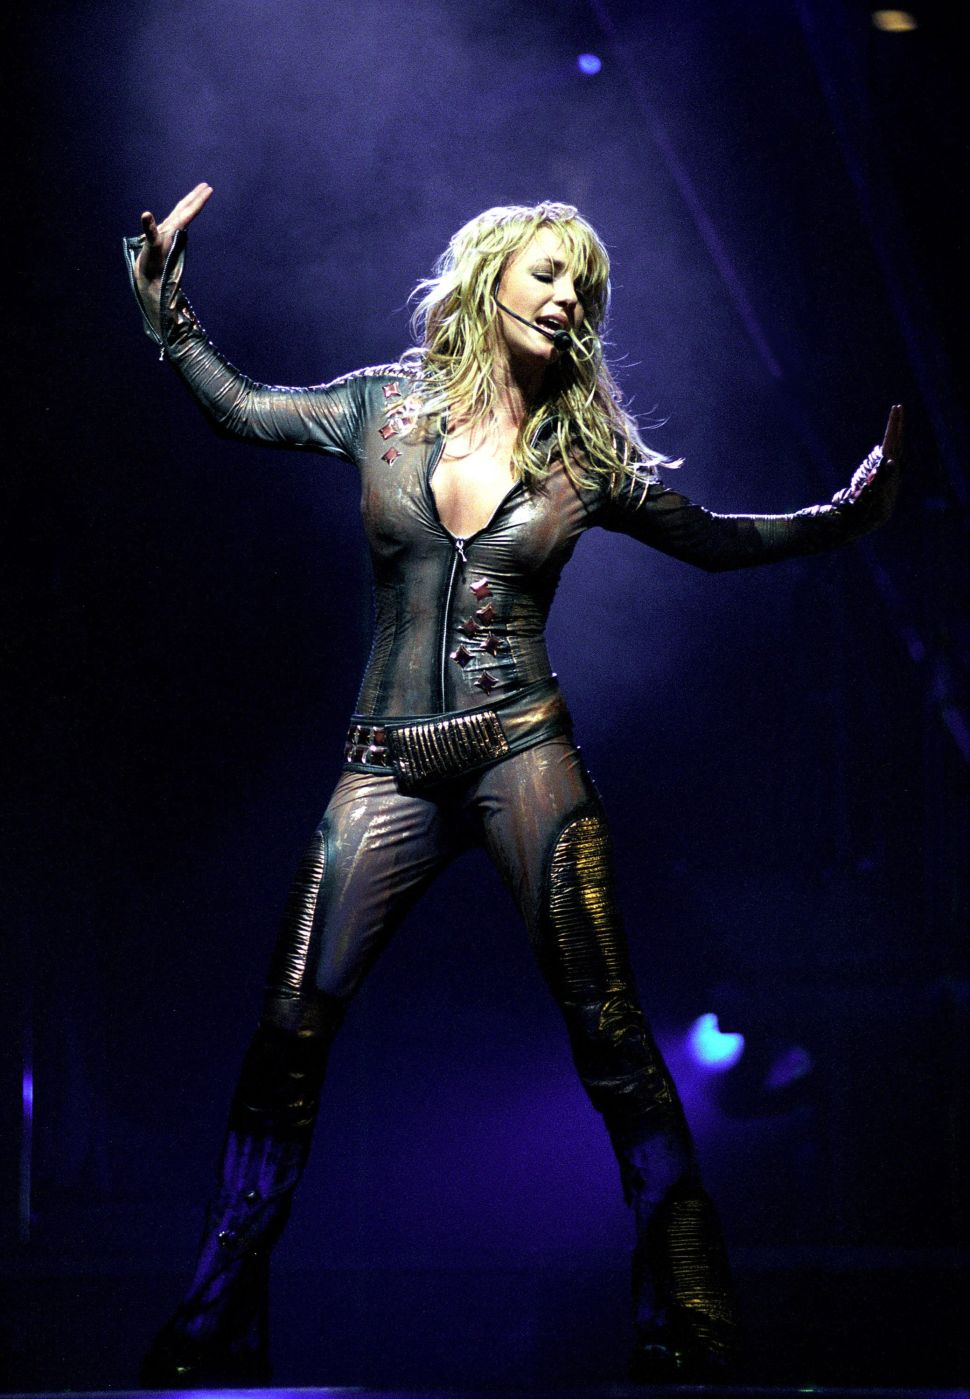 Britney Spears performs at Nassau Coliseum on November 7, 2001